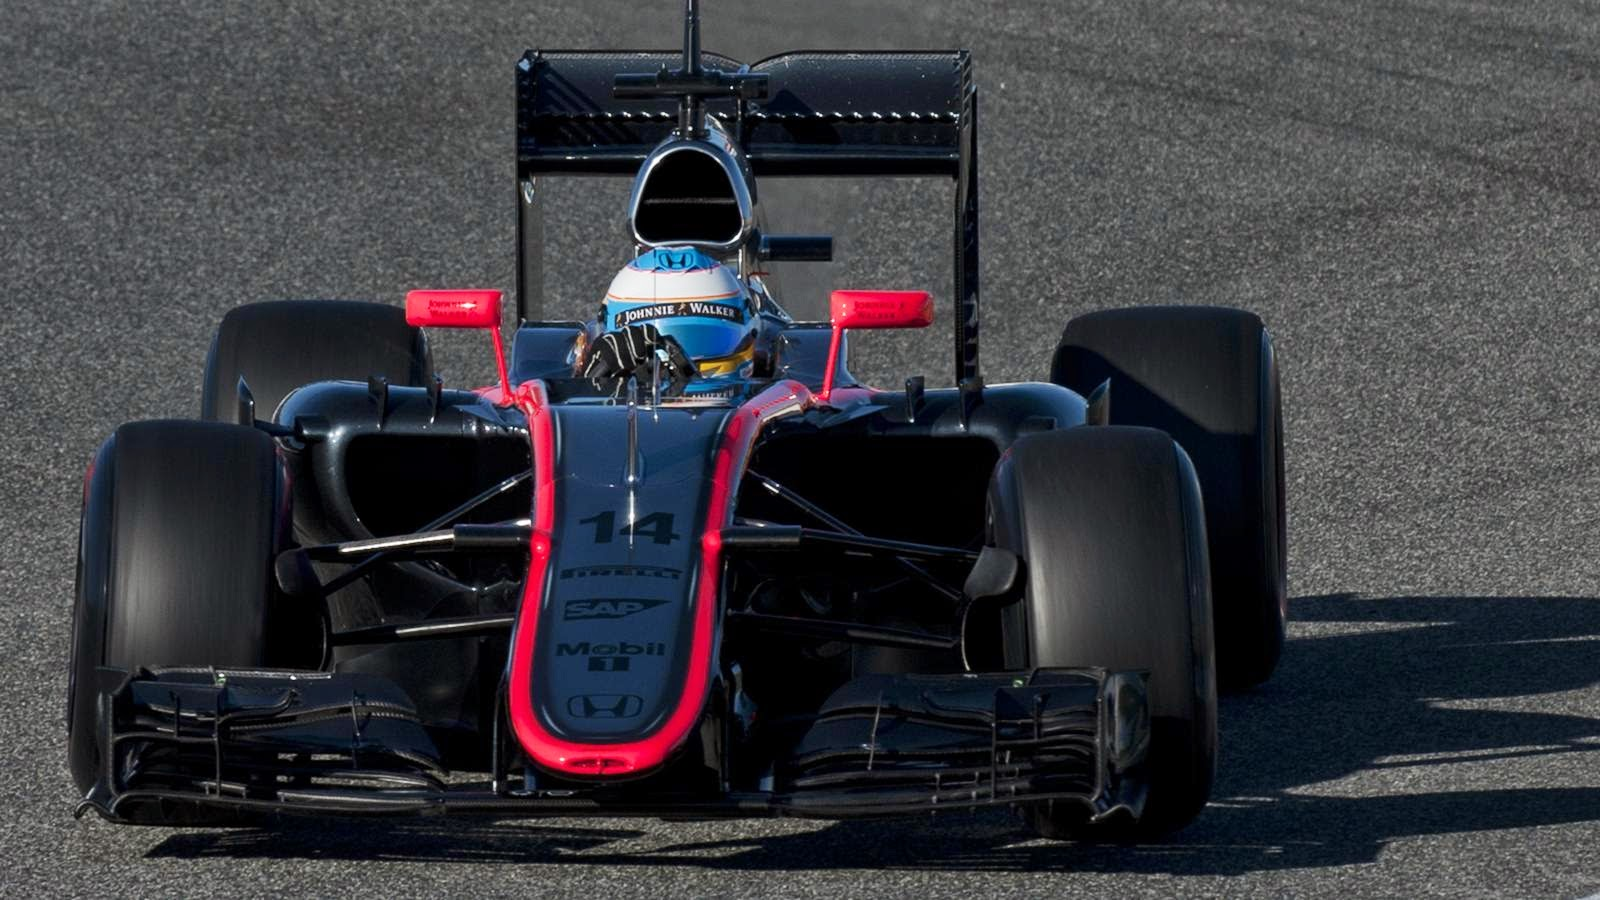 The McLaren MP4-30 suffered a technical failure on Tuesday.